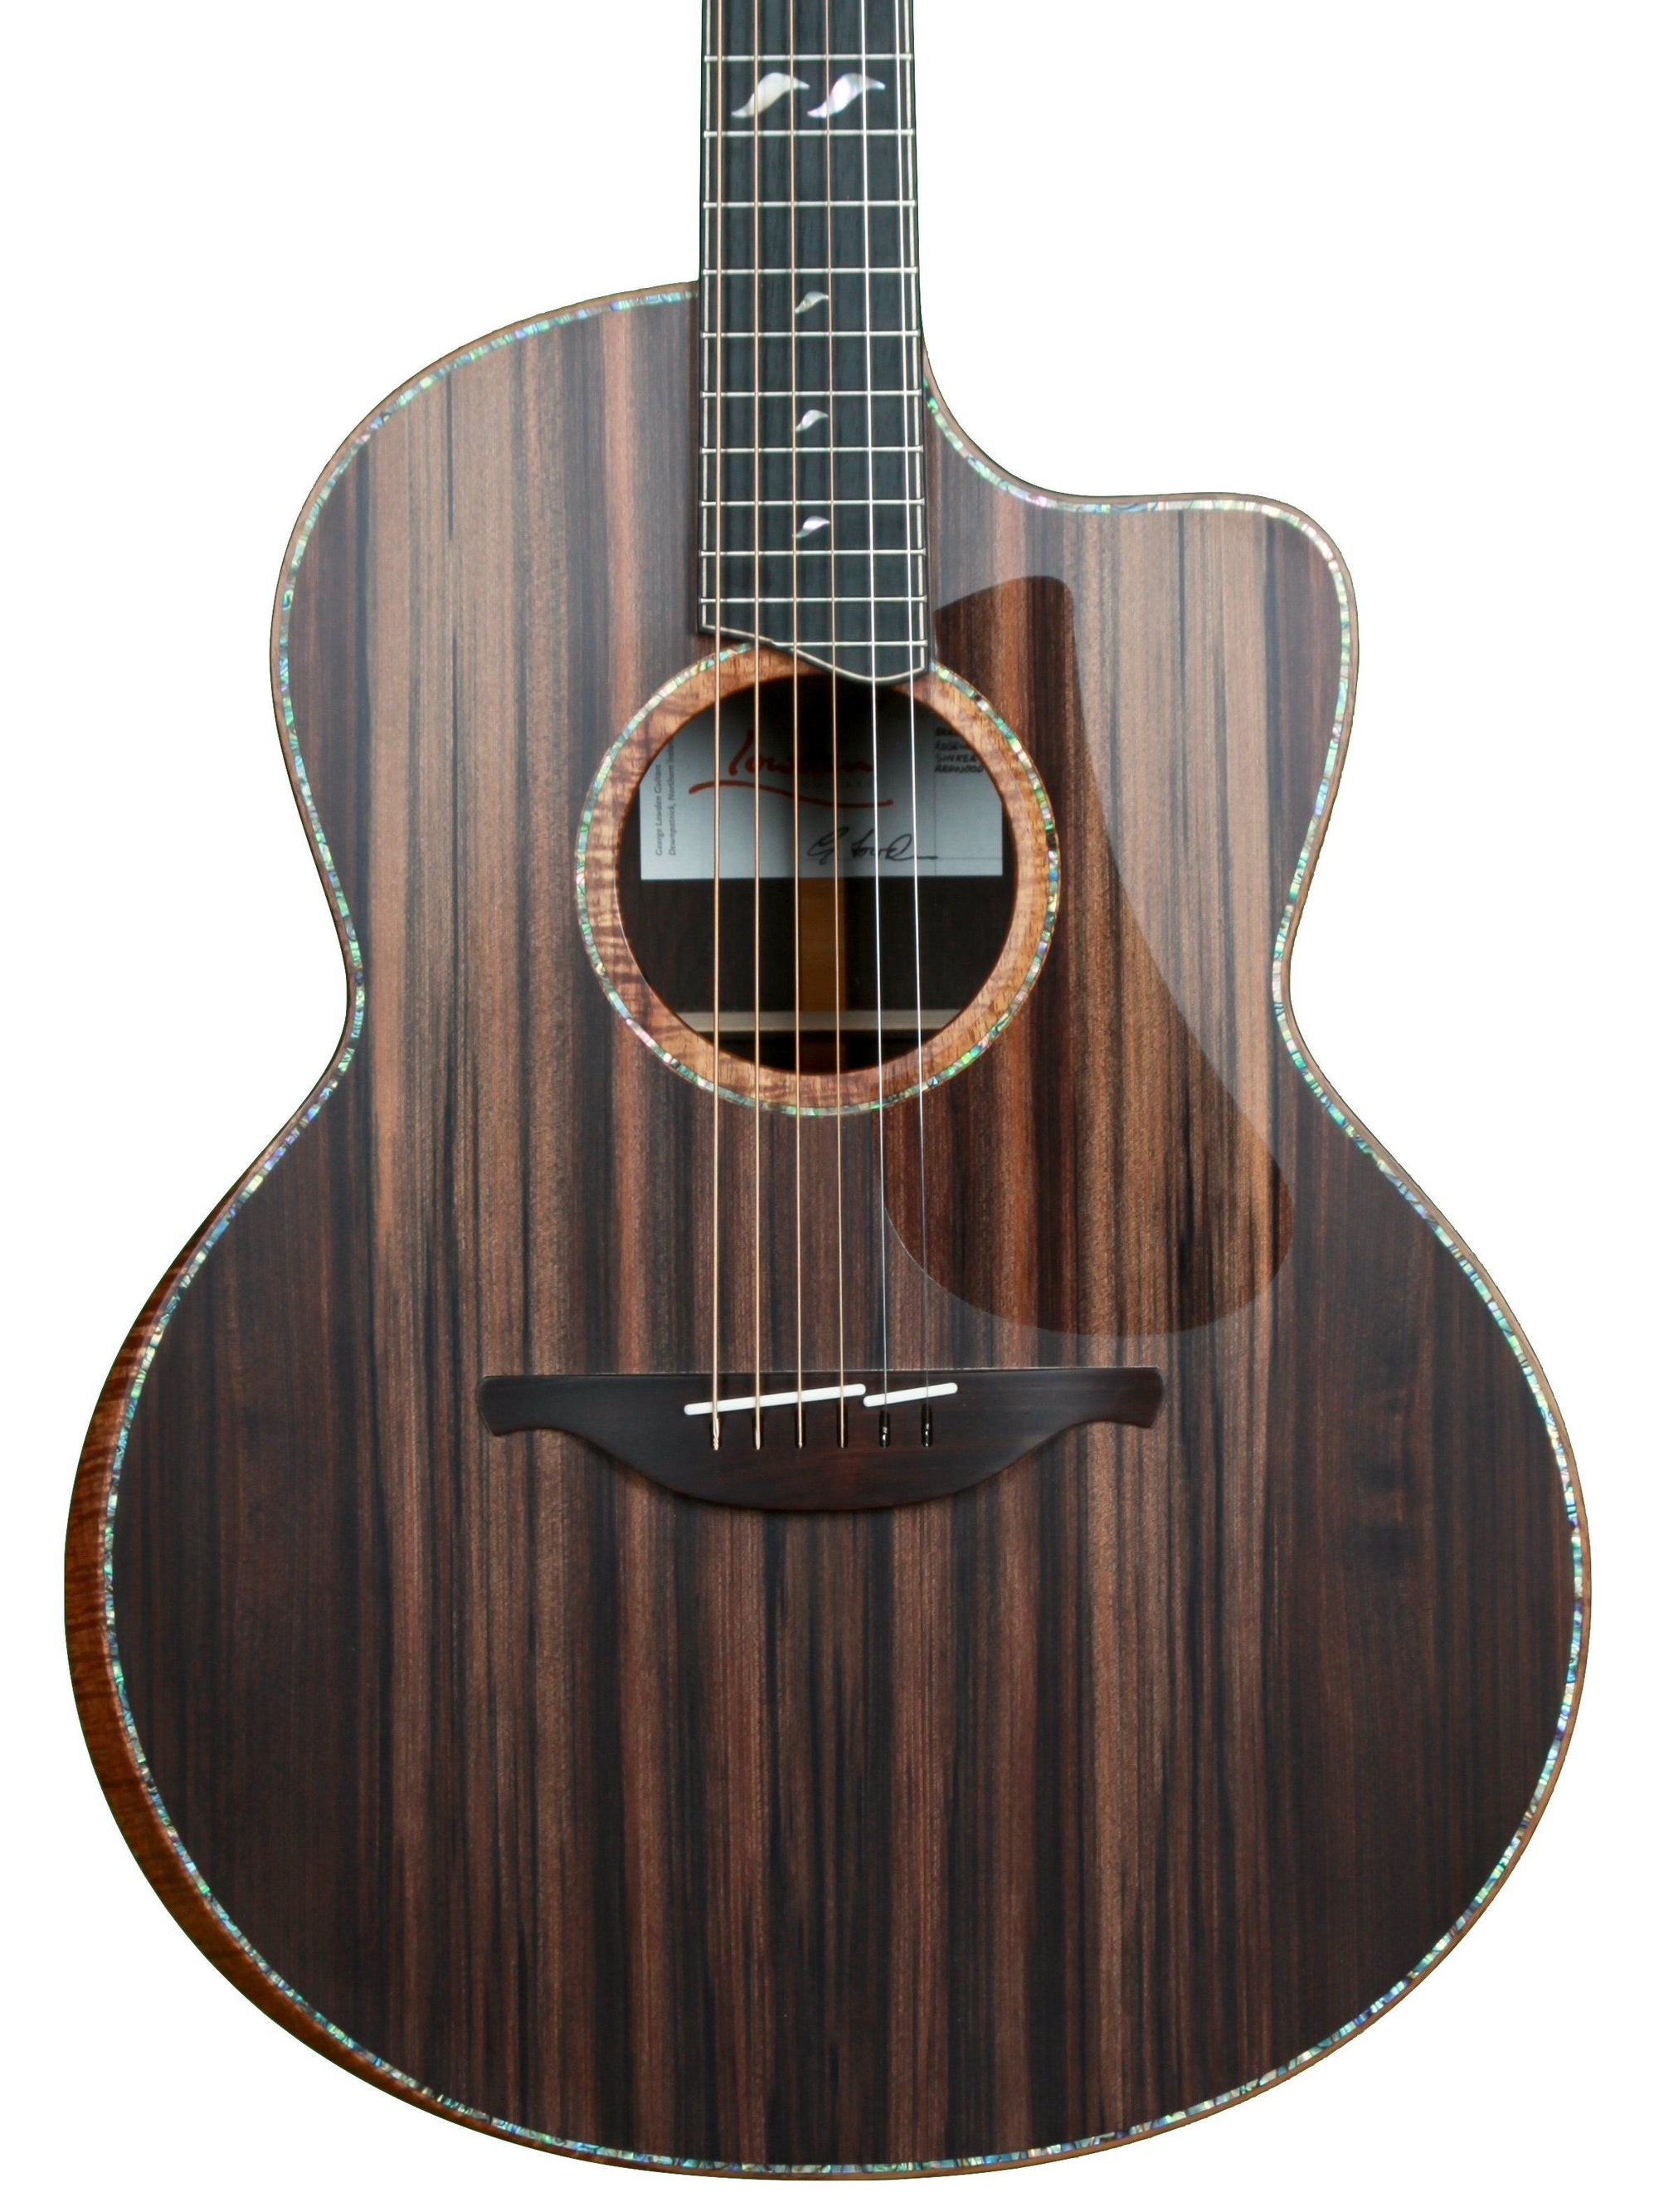 Lowden F50c Brazilian Rosewood Sinker Redwood with Bevel, 38 and GL Leaf Inlay - Heartbreaker Guitars - Heartbreaker Guitars